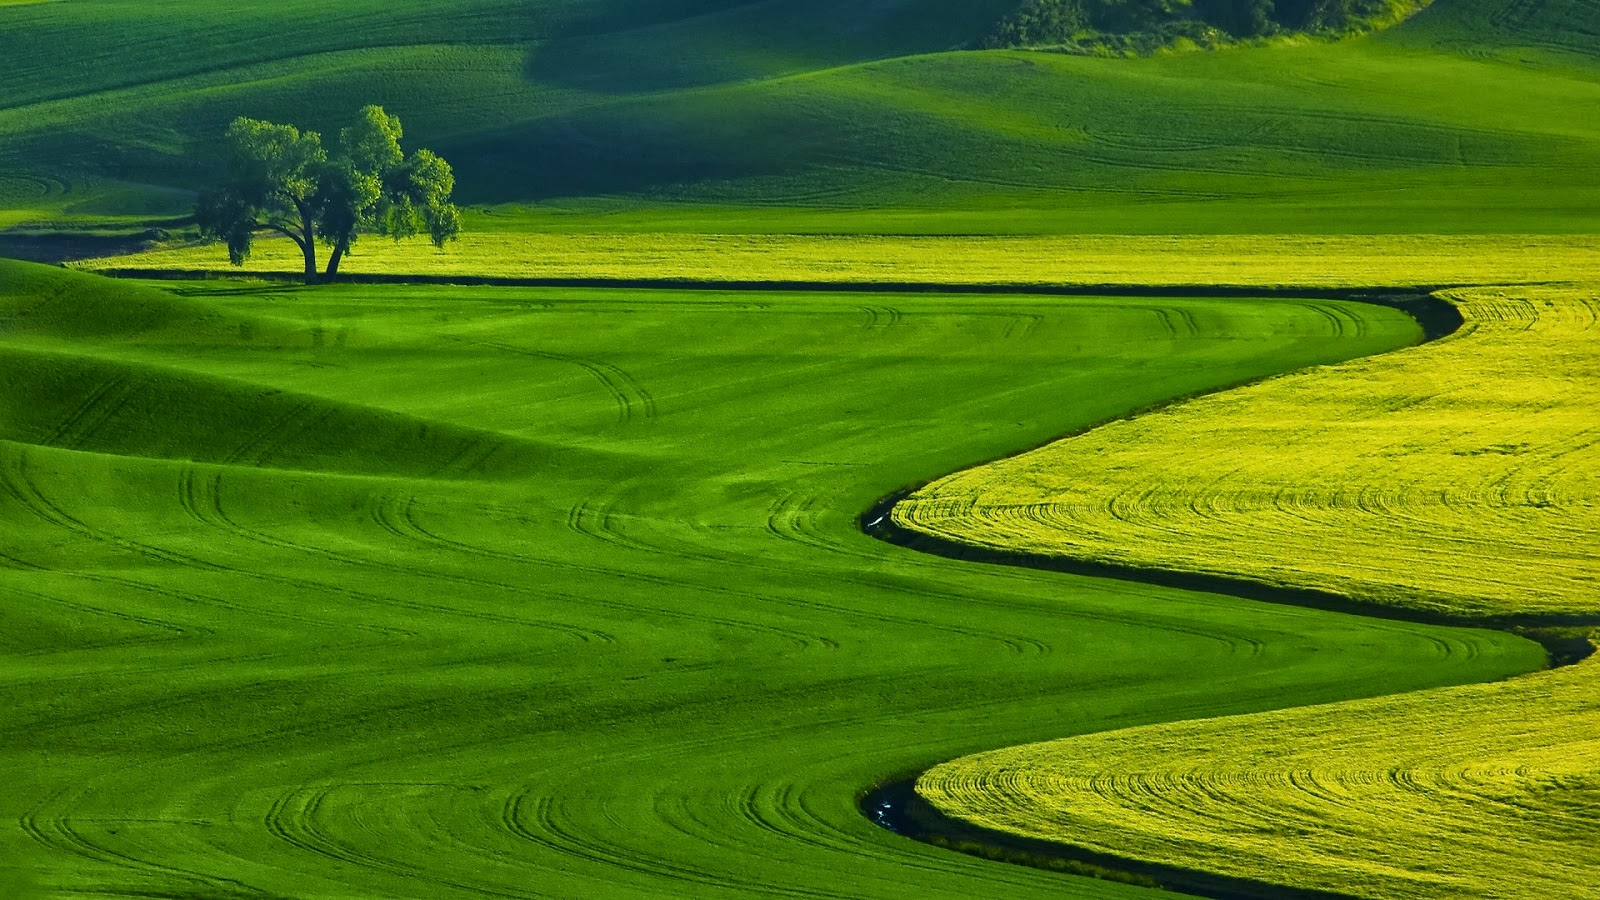 ... Nature Wallpapers Free Downloads Full HD High Res Nature Wallpapers